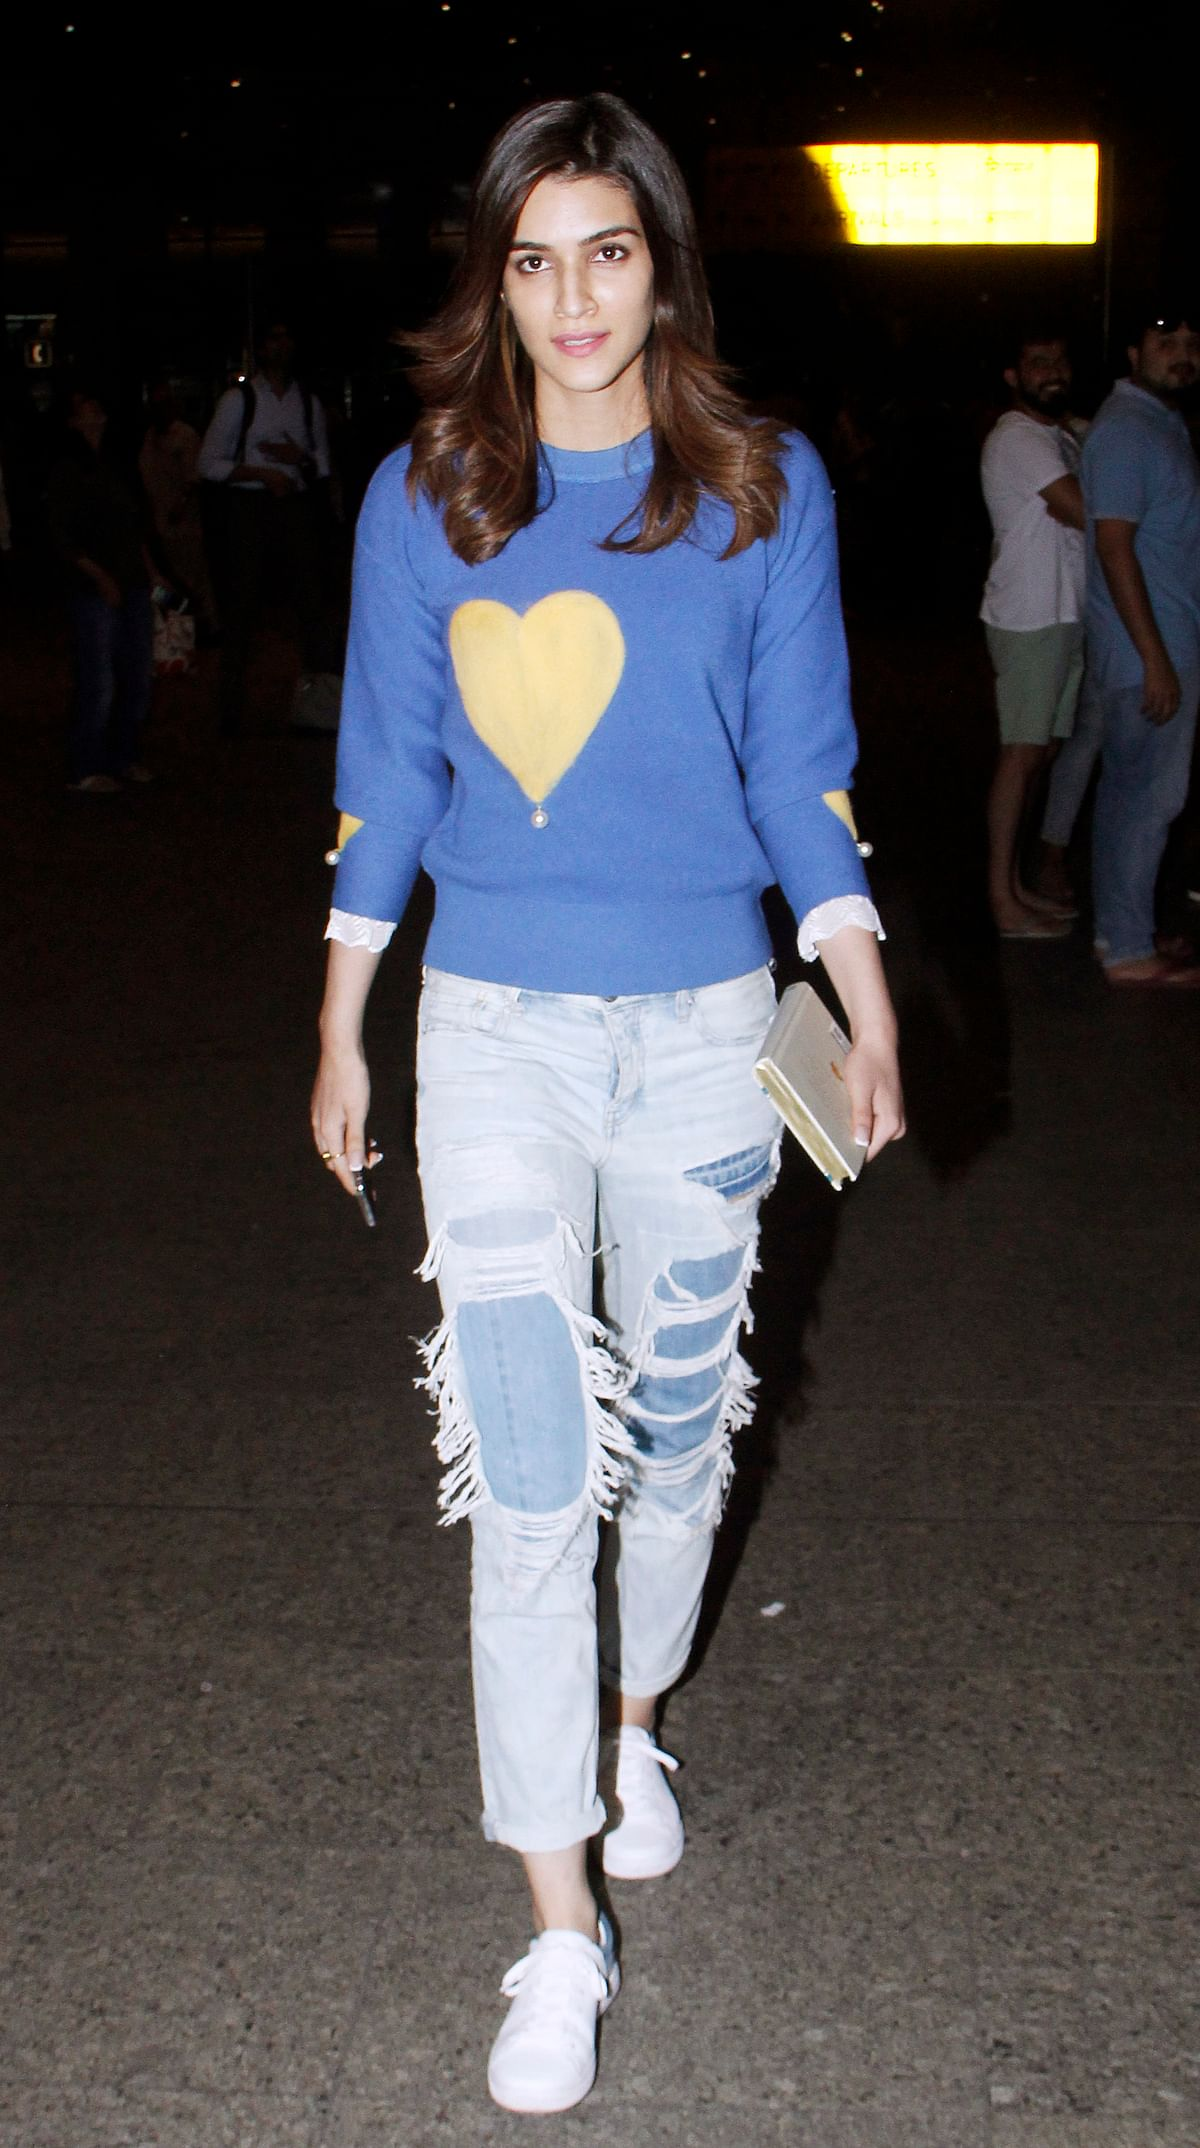 Kriti Sanon in her airport look.